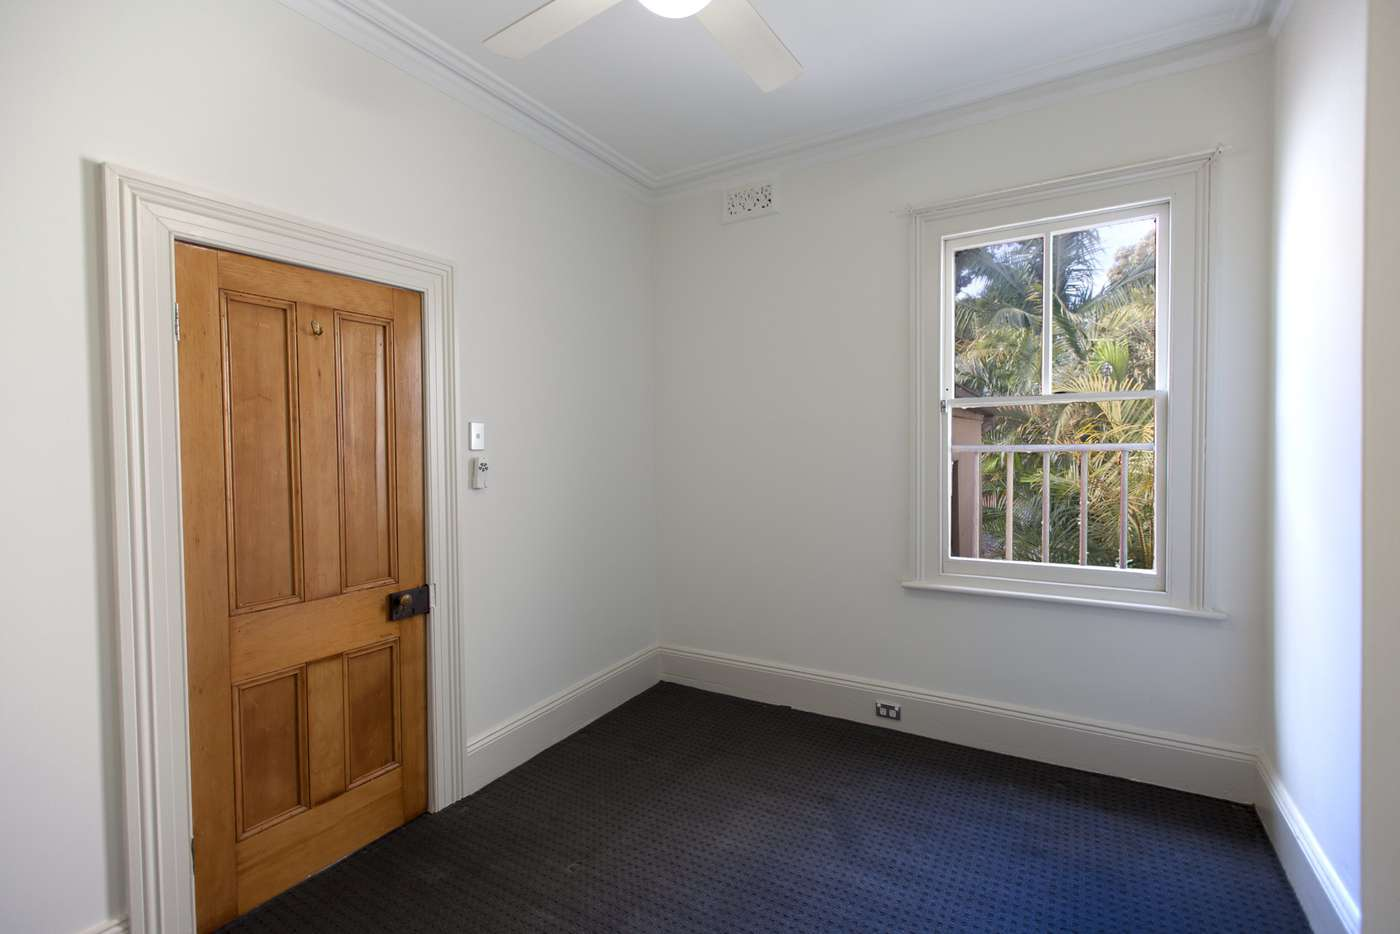 Seventh view of Homely house listing, 196 Abercrombie Street, Darlington NSW 2008